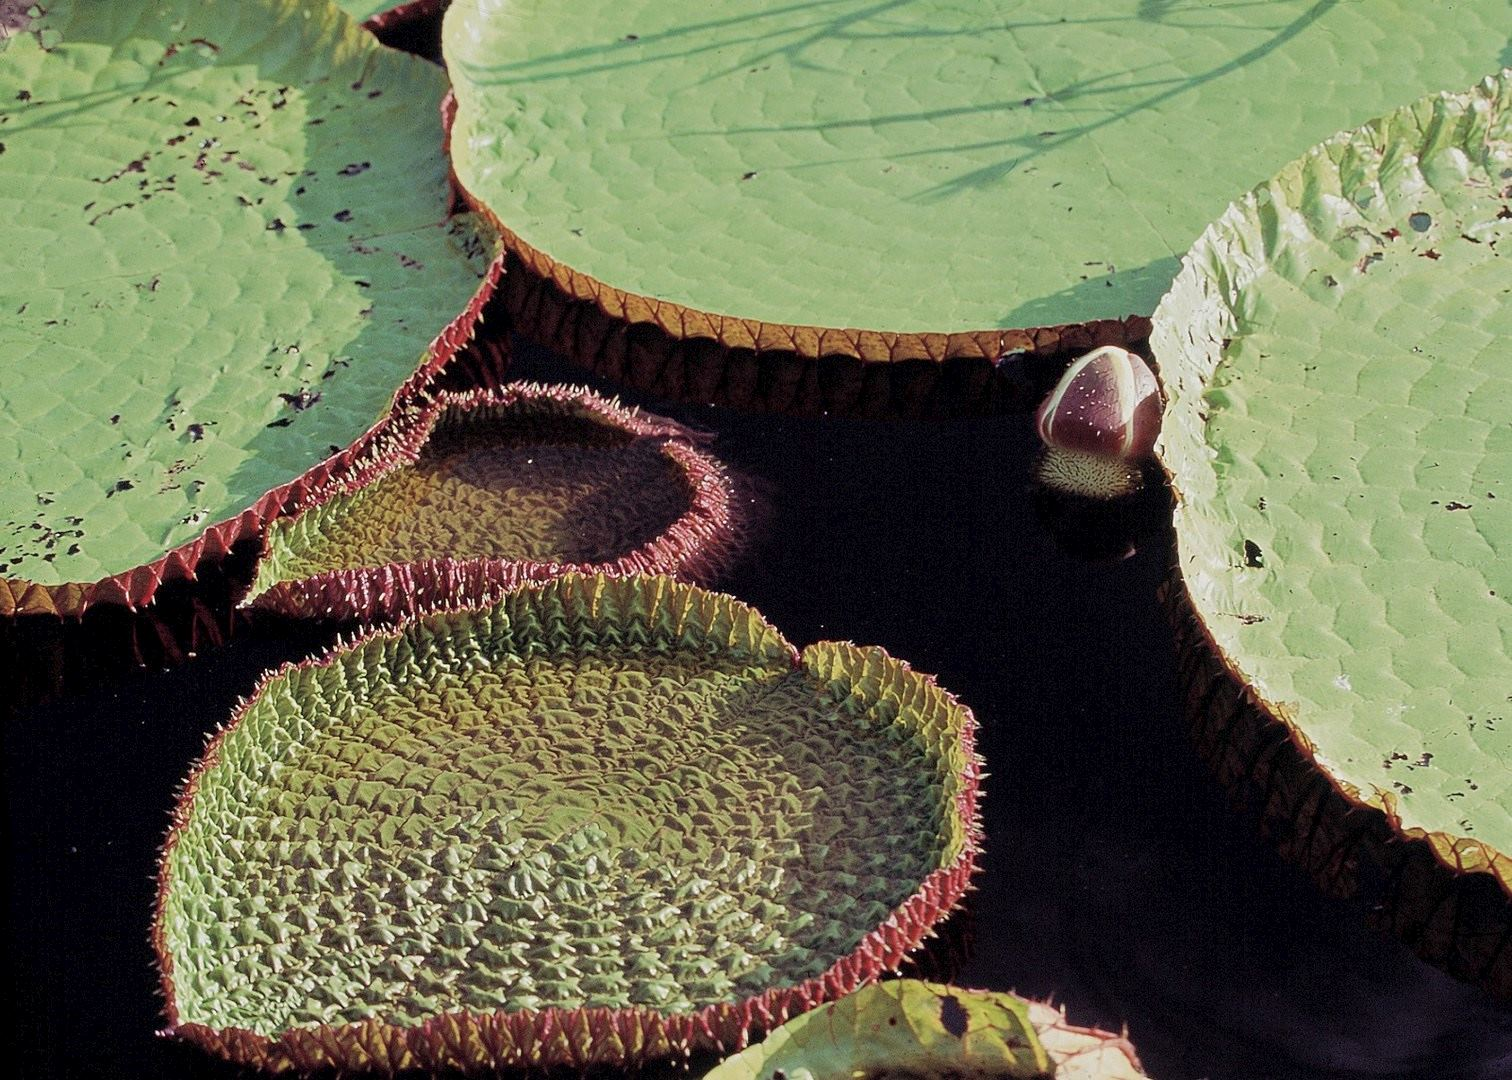 Visit The Amazon Rainforest in Brazil | Audley Travel